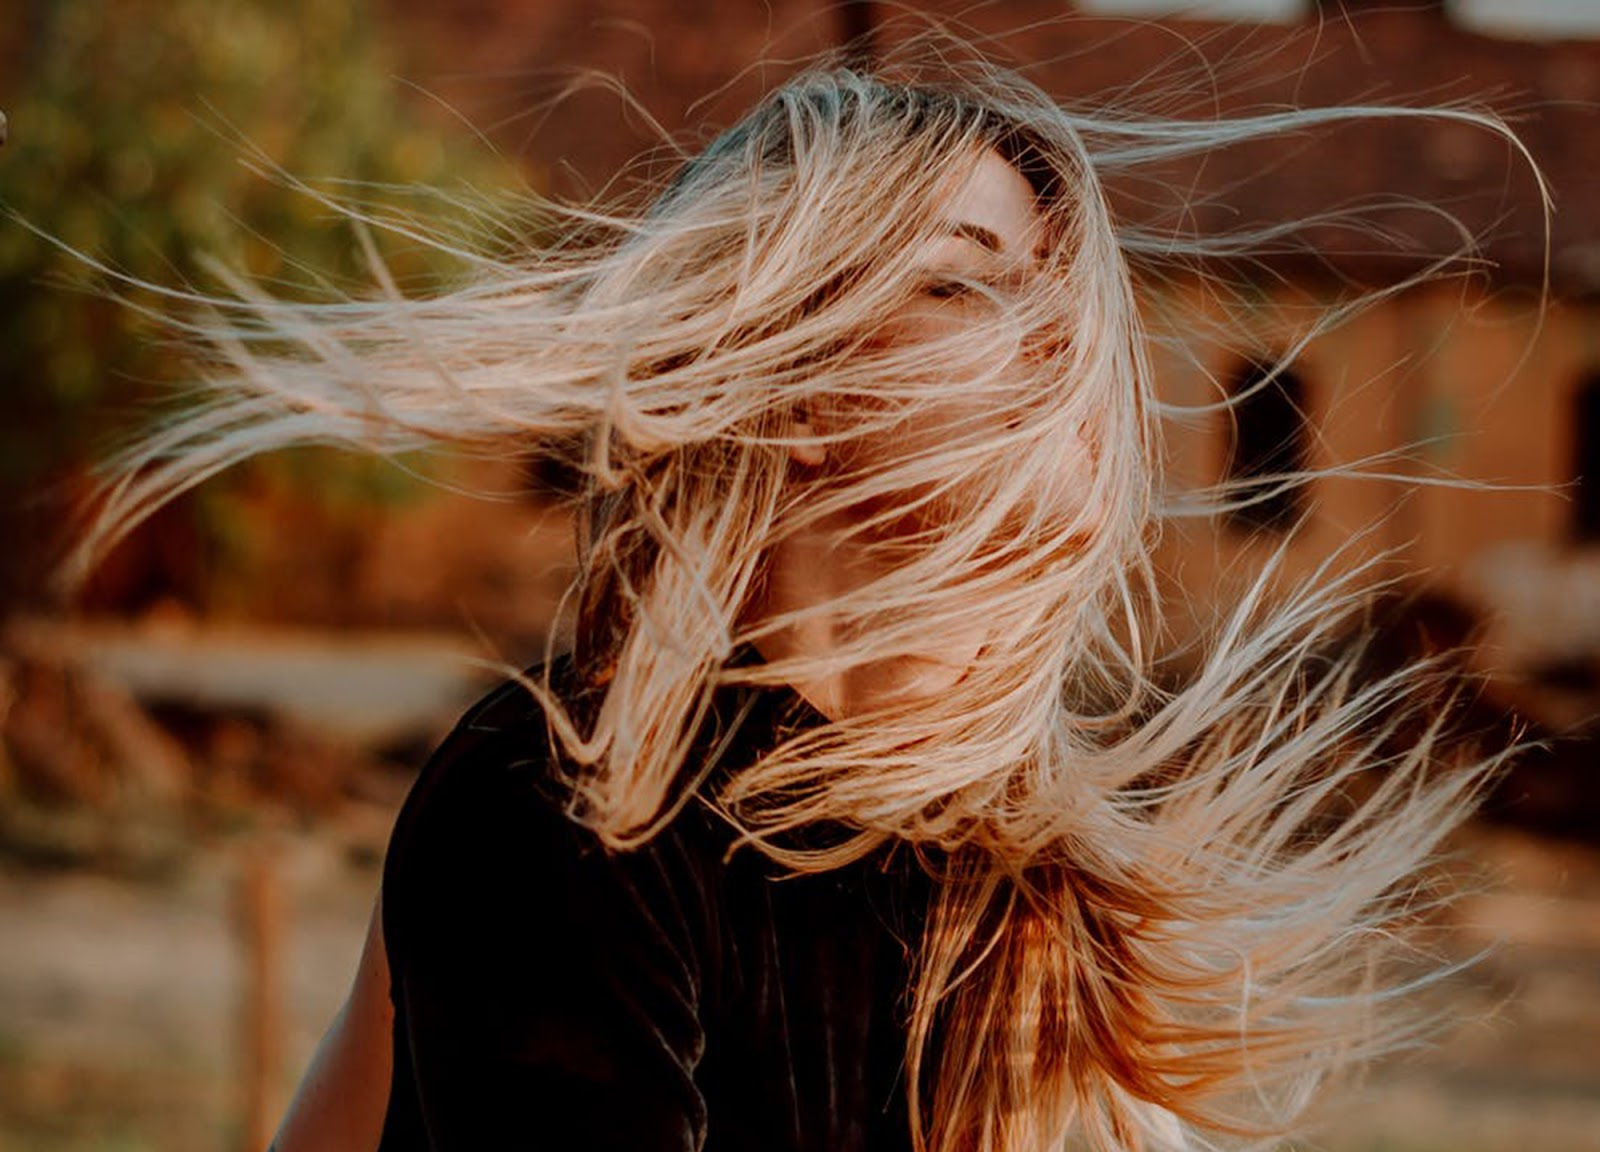 woman with straight blonde hair blowing in the wind